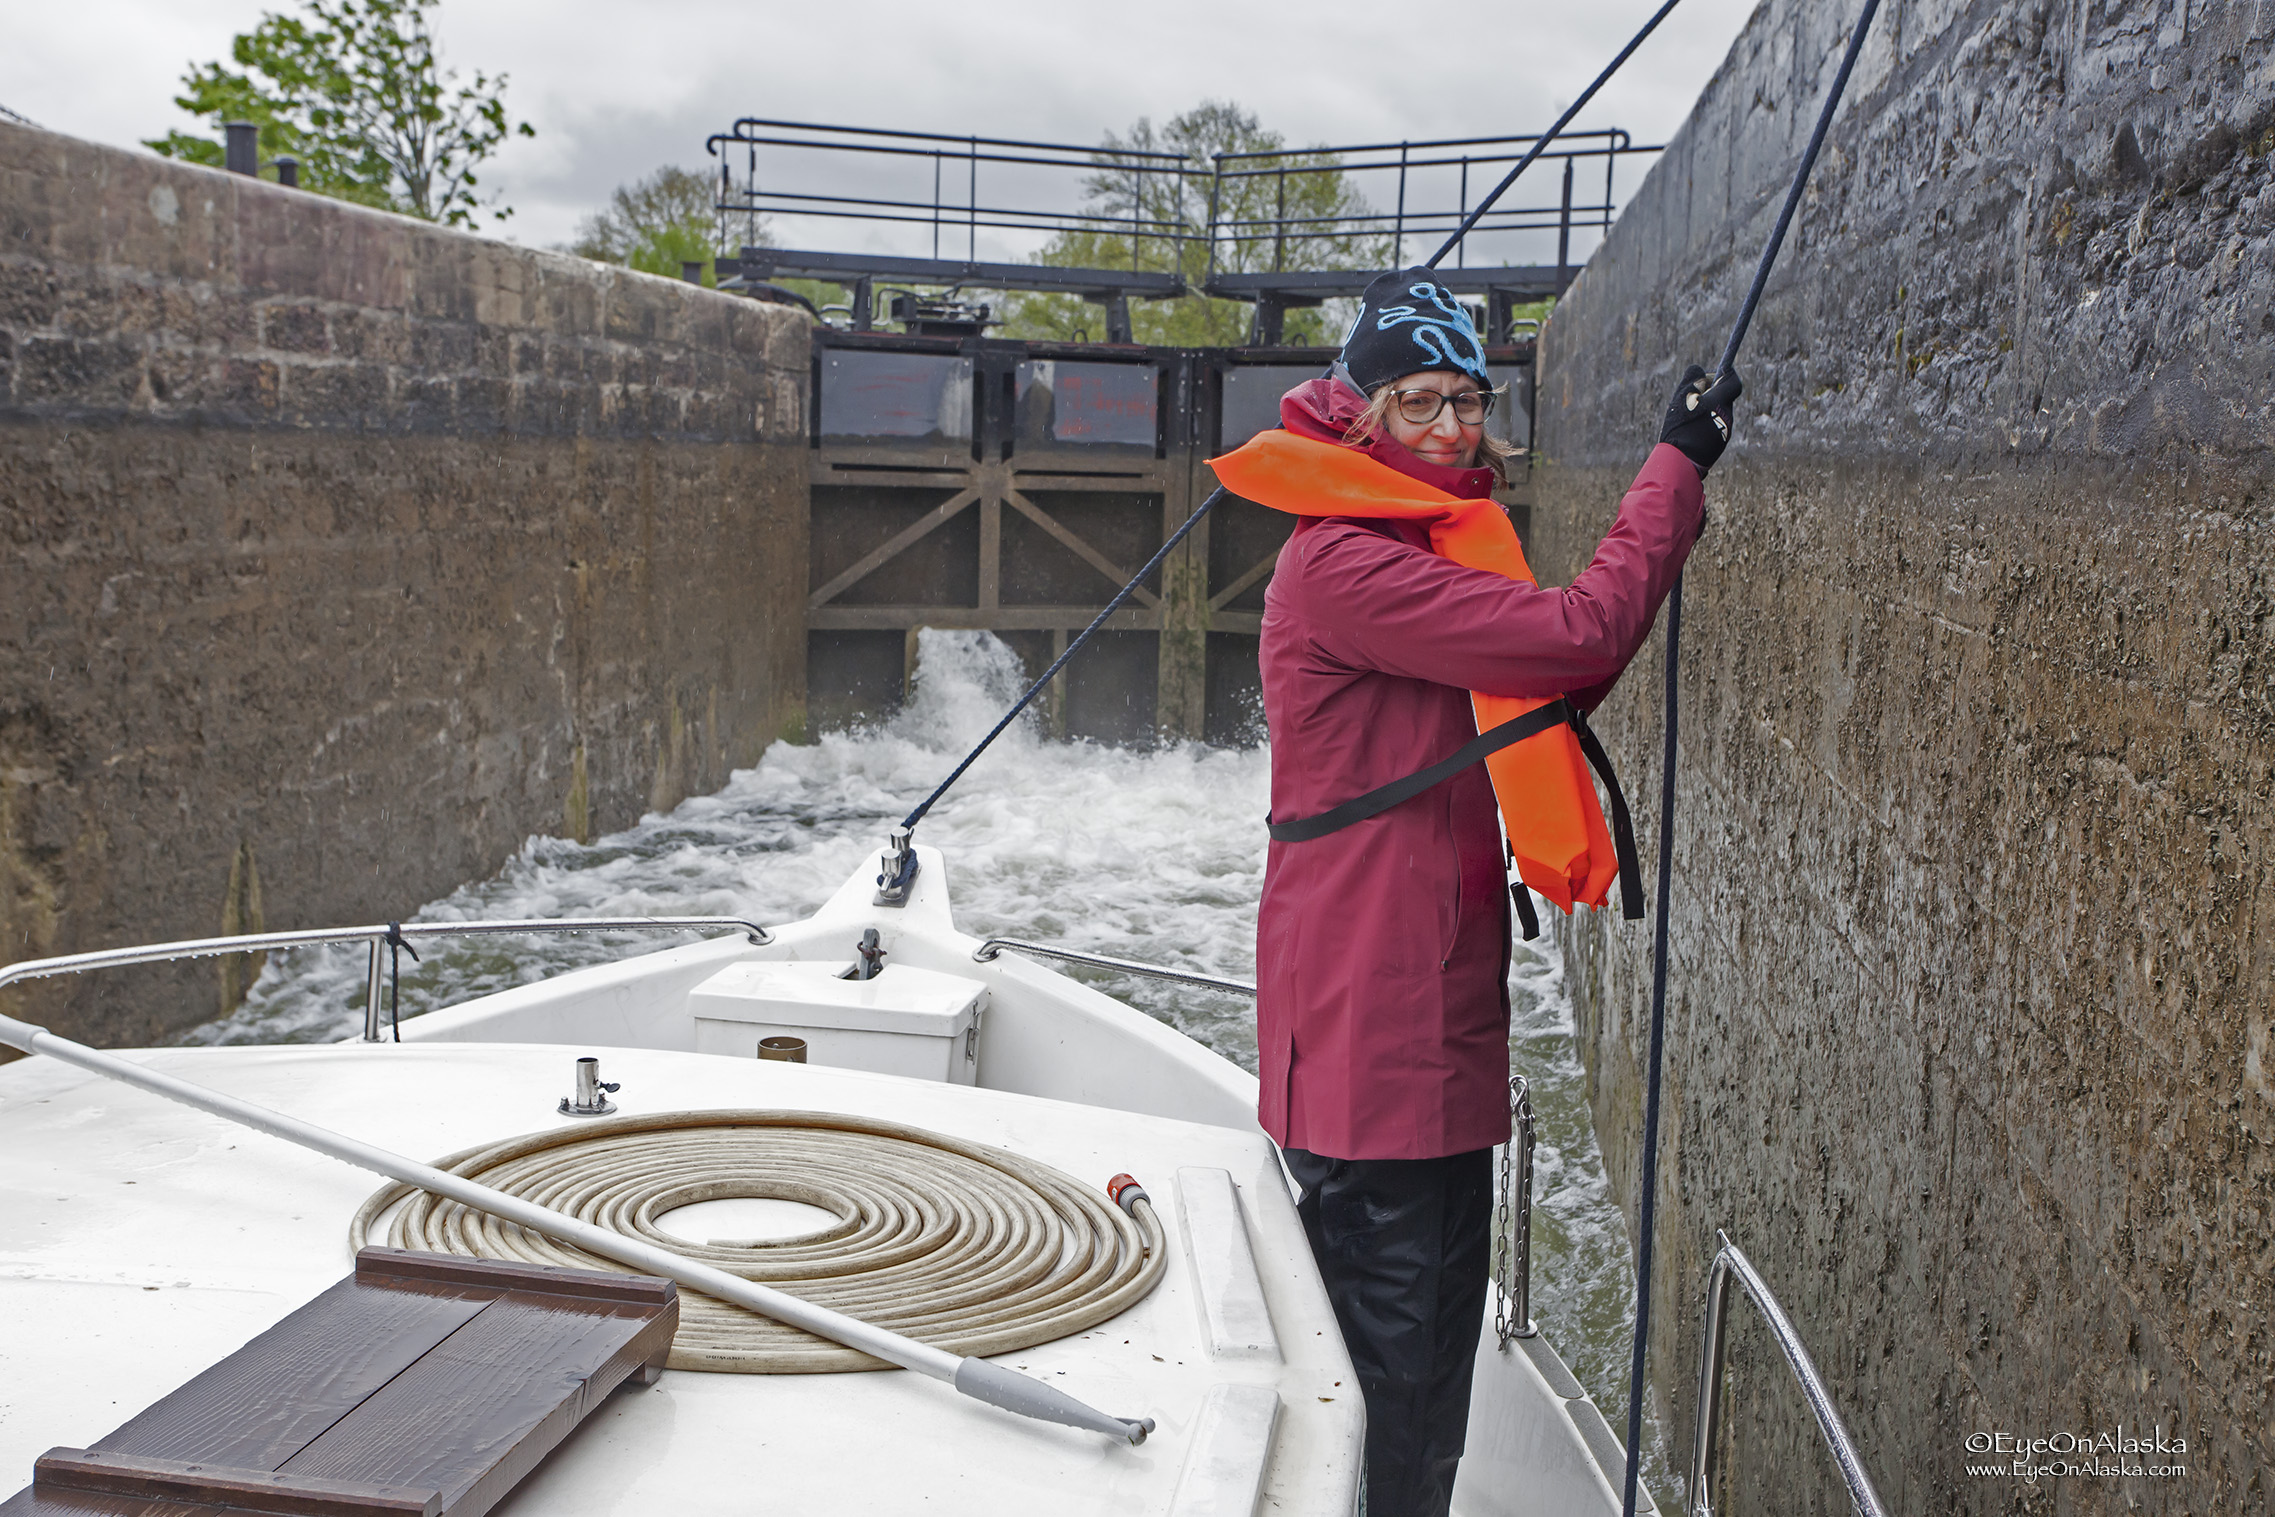 2.5 meter drop in this lock. Pretty impressive watching all that water move in and out.